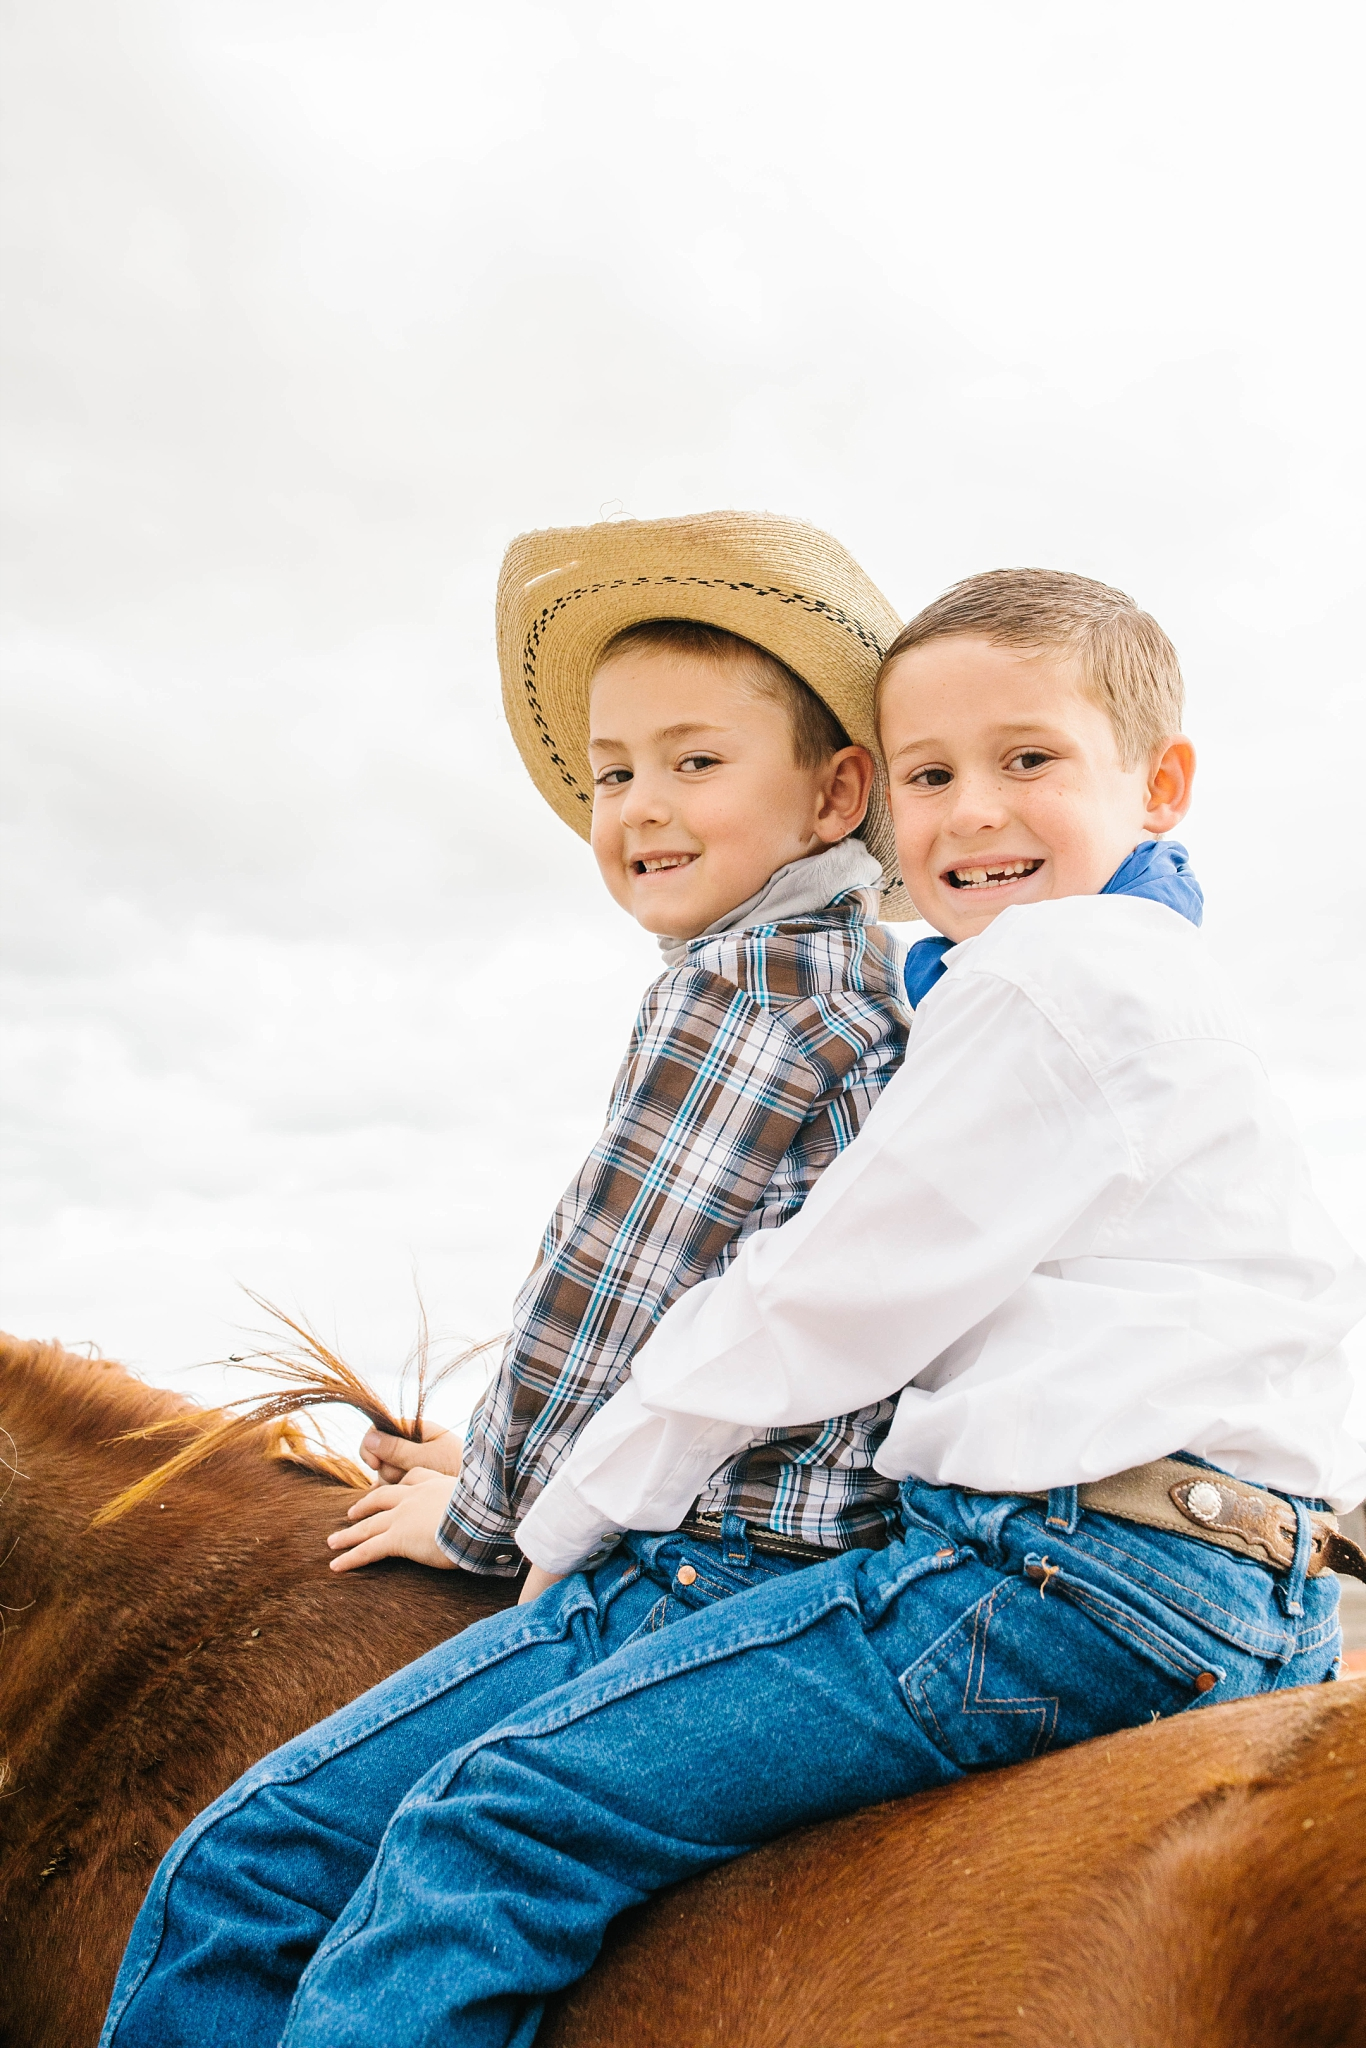 Lister-82_Lizzie-B-Imagery-Utah-Family-Photographer-Lifestyle-Photography-Salt-Lake-City-Park-City-Utah-County-Farm-Family-Session.jpg